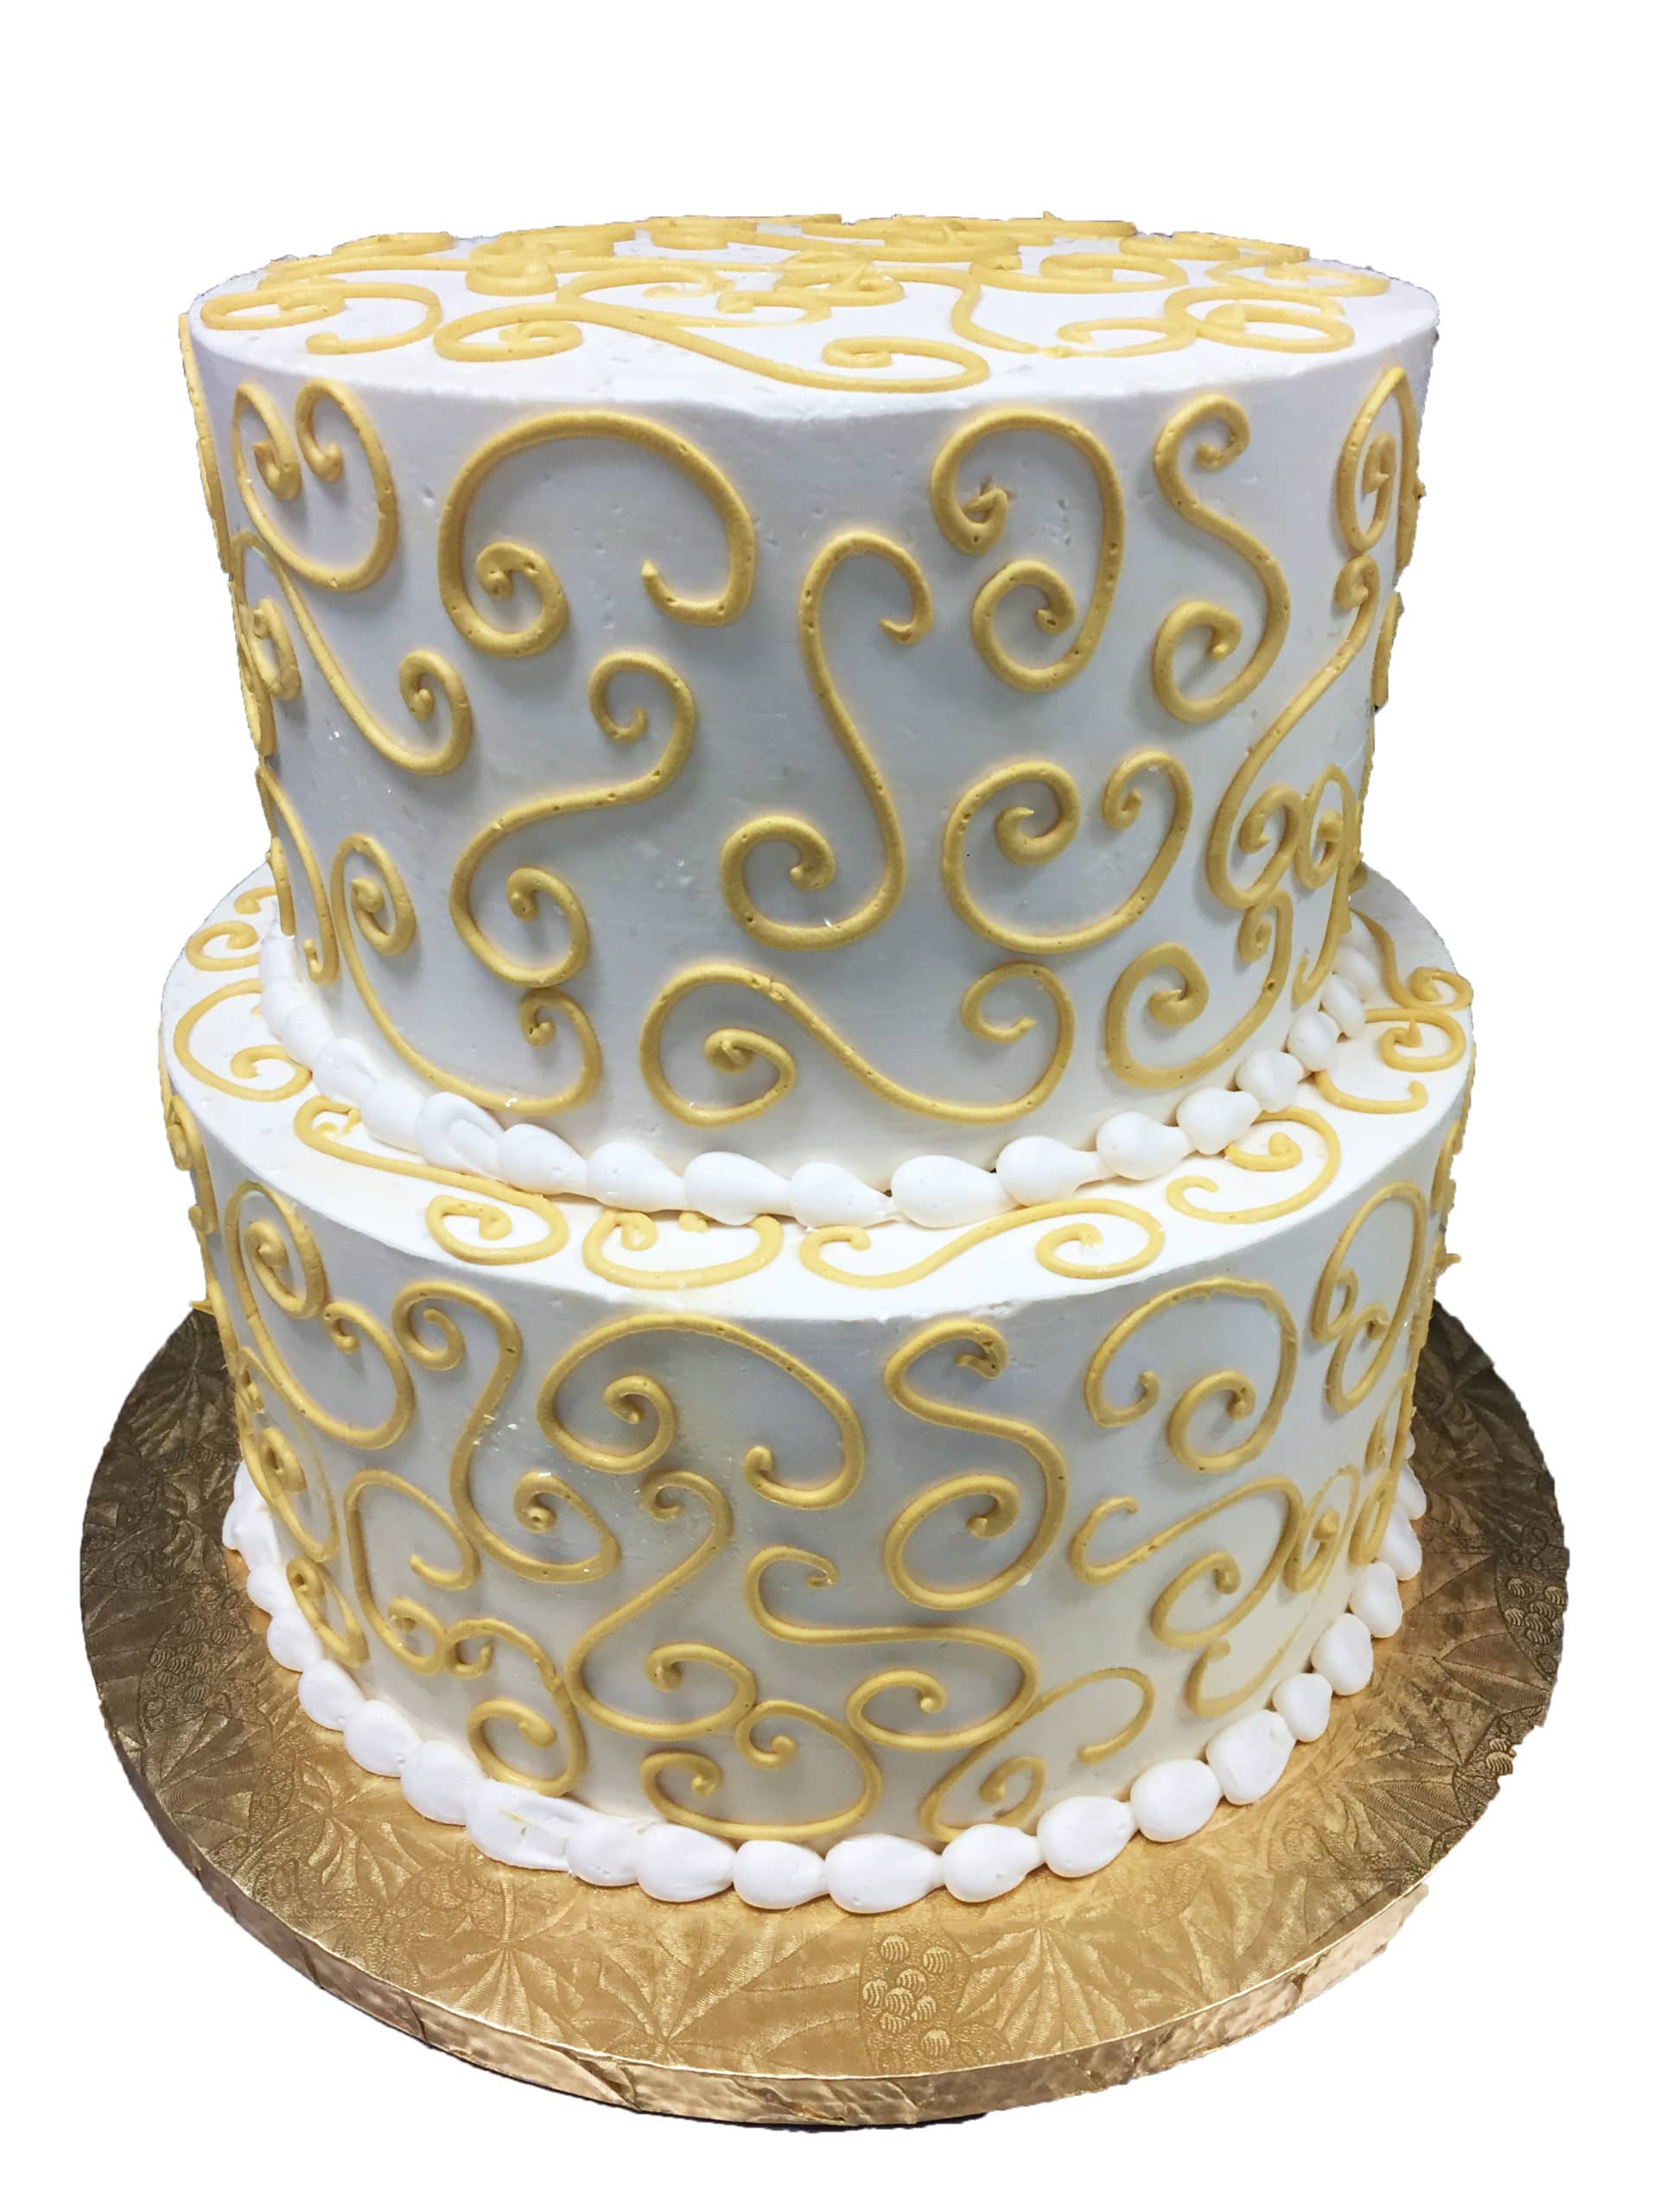 Miraculous Two Tier Cake Lace Aggies Bakery Cake Shop Funny Birthday Cards Online Alyptdamsfinfo